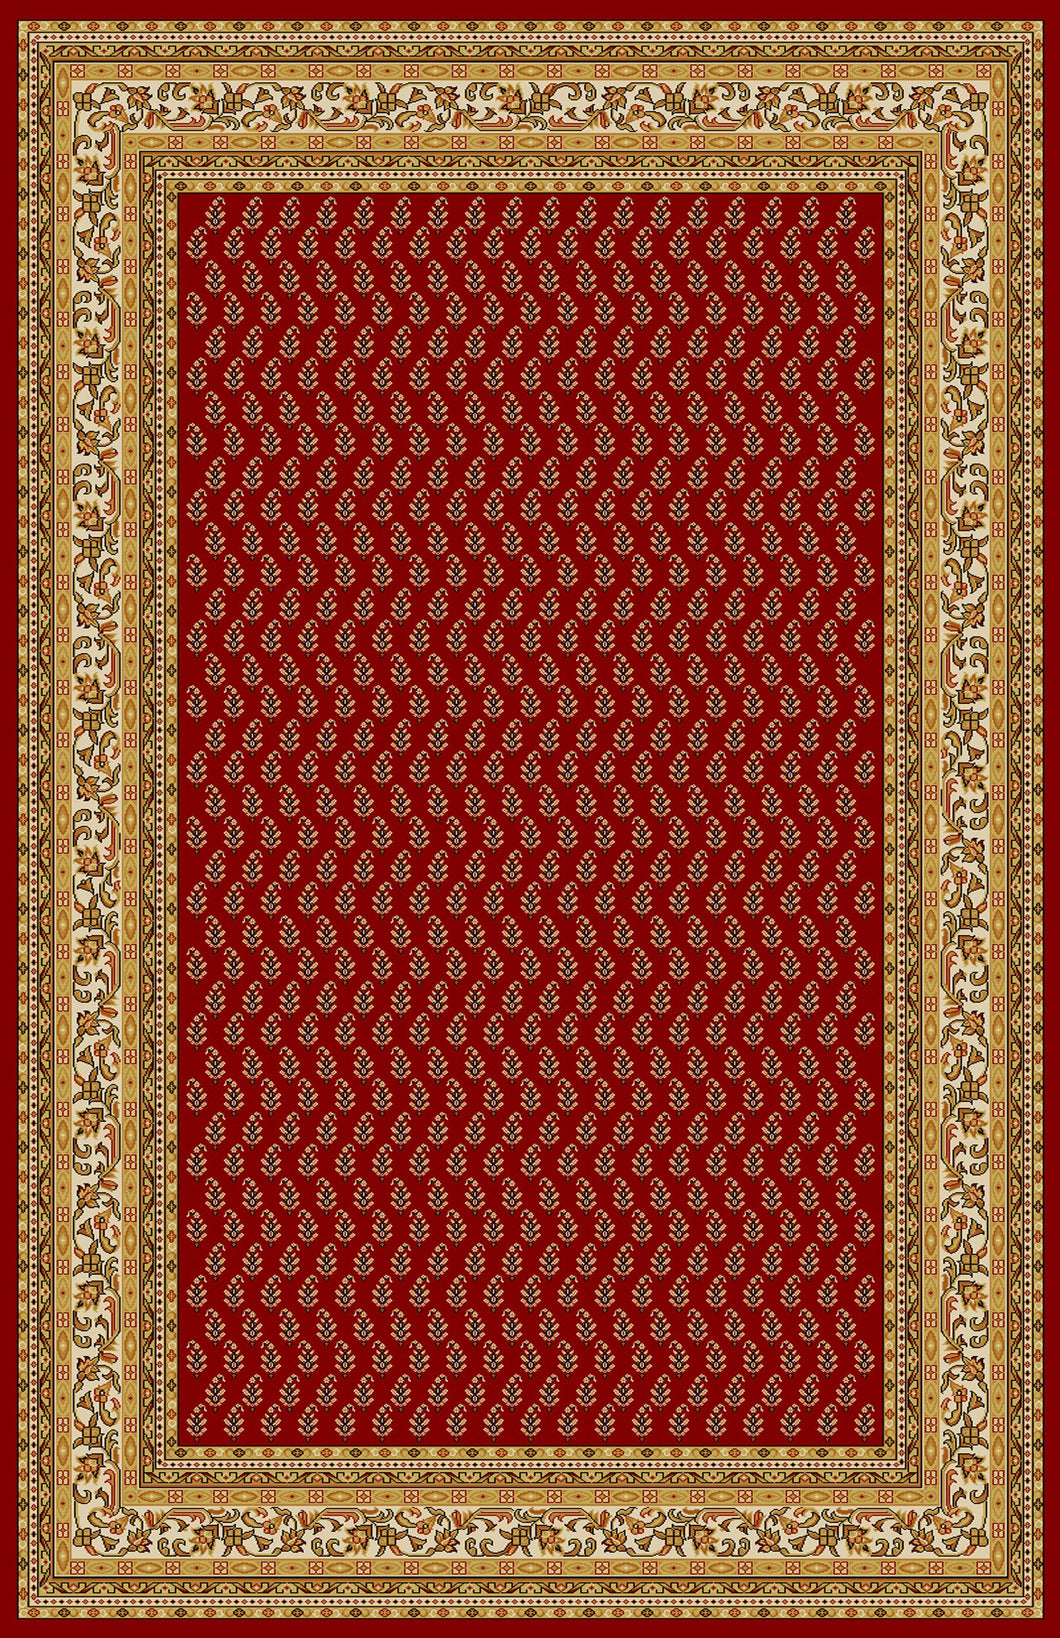 Amatrudo Red Area Rug - Rug Tycoon